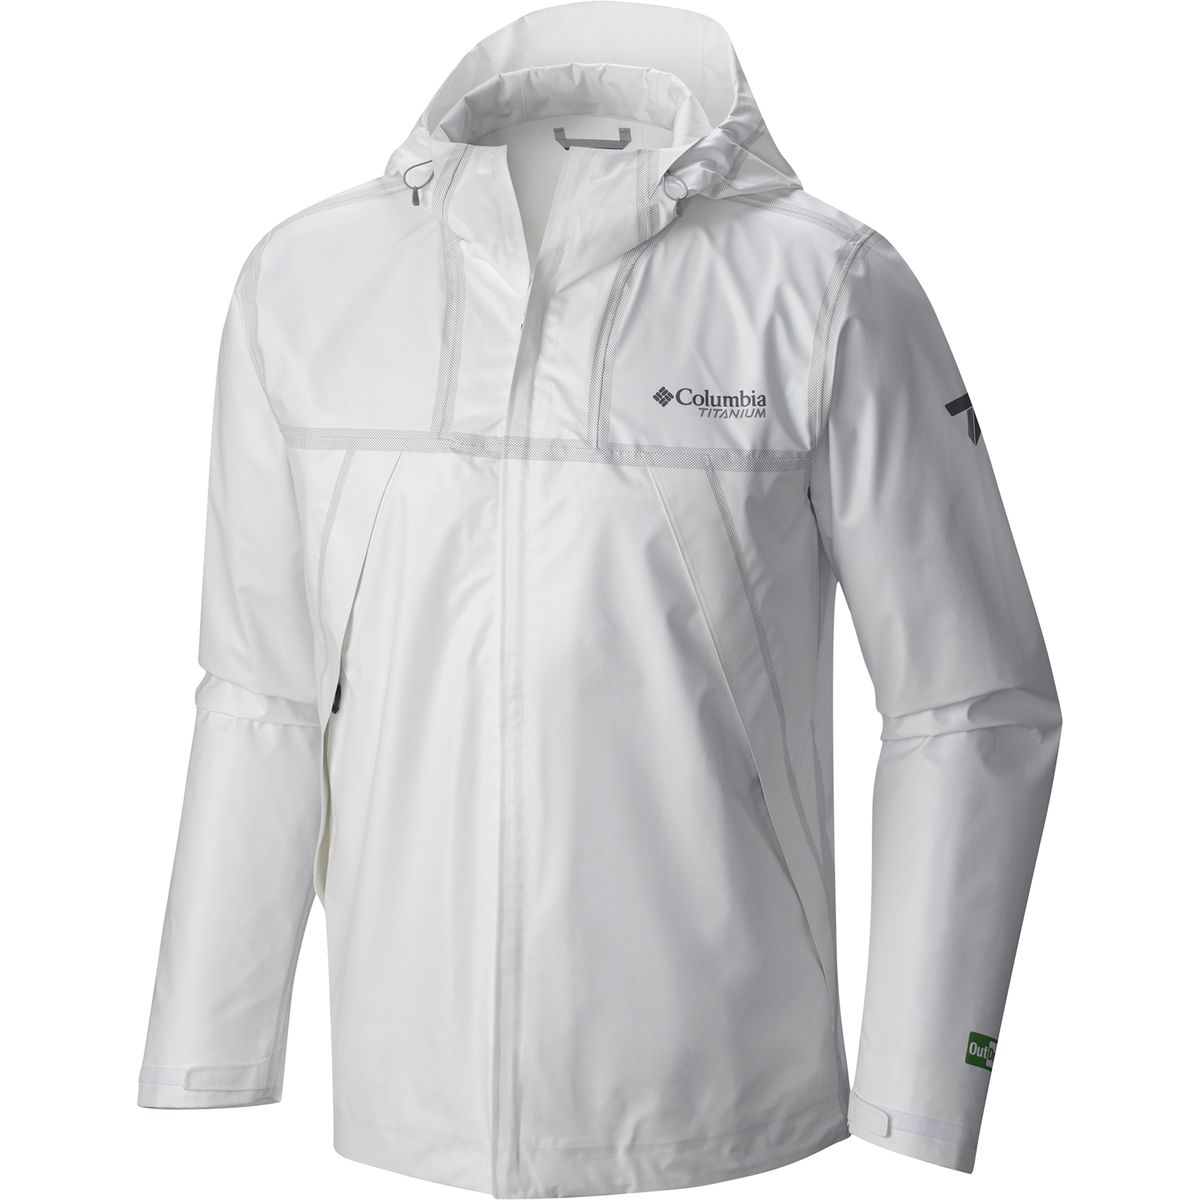 Columbia Outdry Ex Eco Shell Jacket - Men